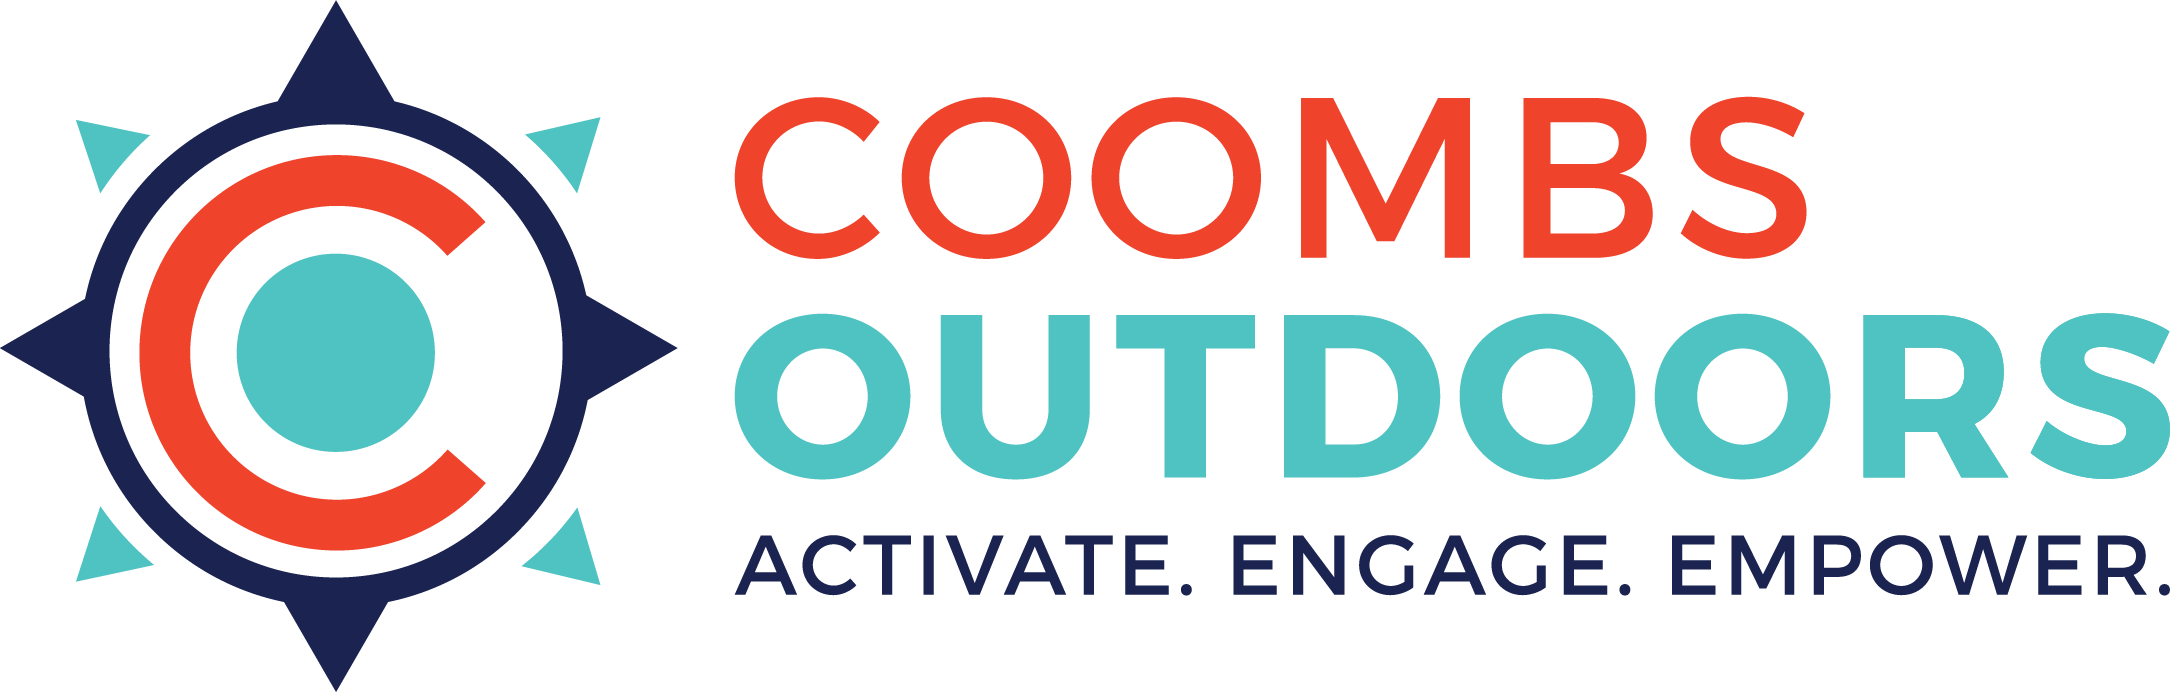 Coombs_Outdoors_logo.png